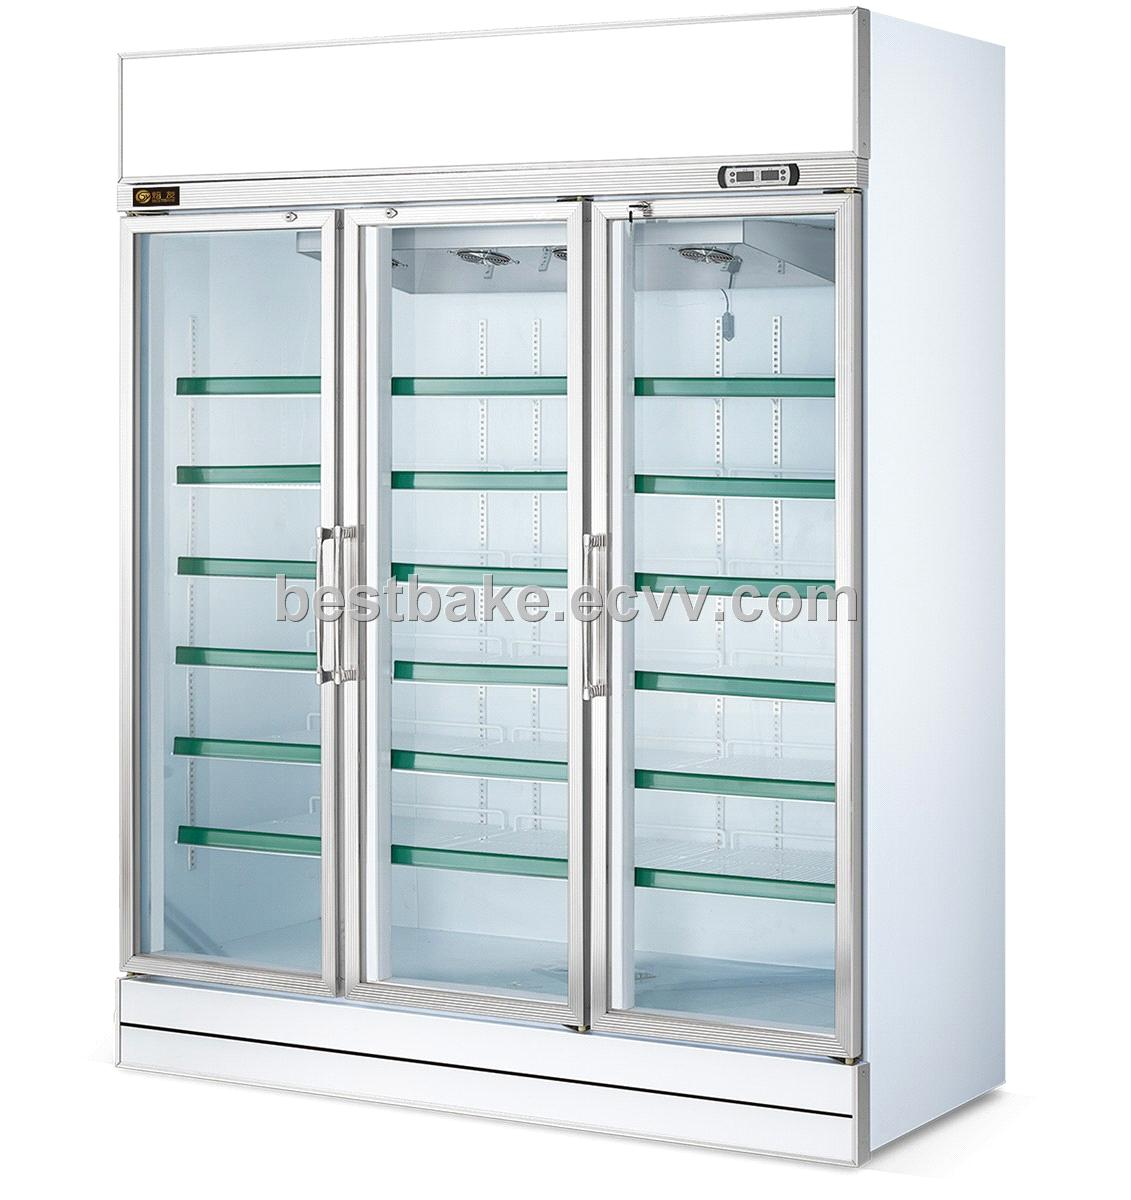 Convenience Stores Case / Display Case / Showcase